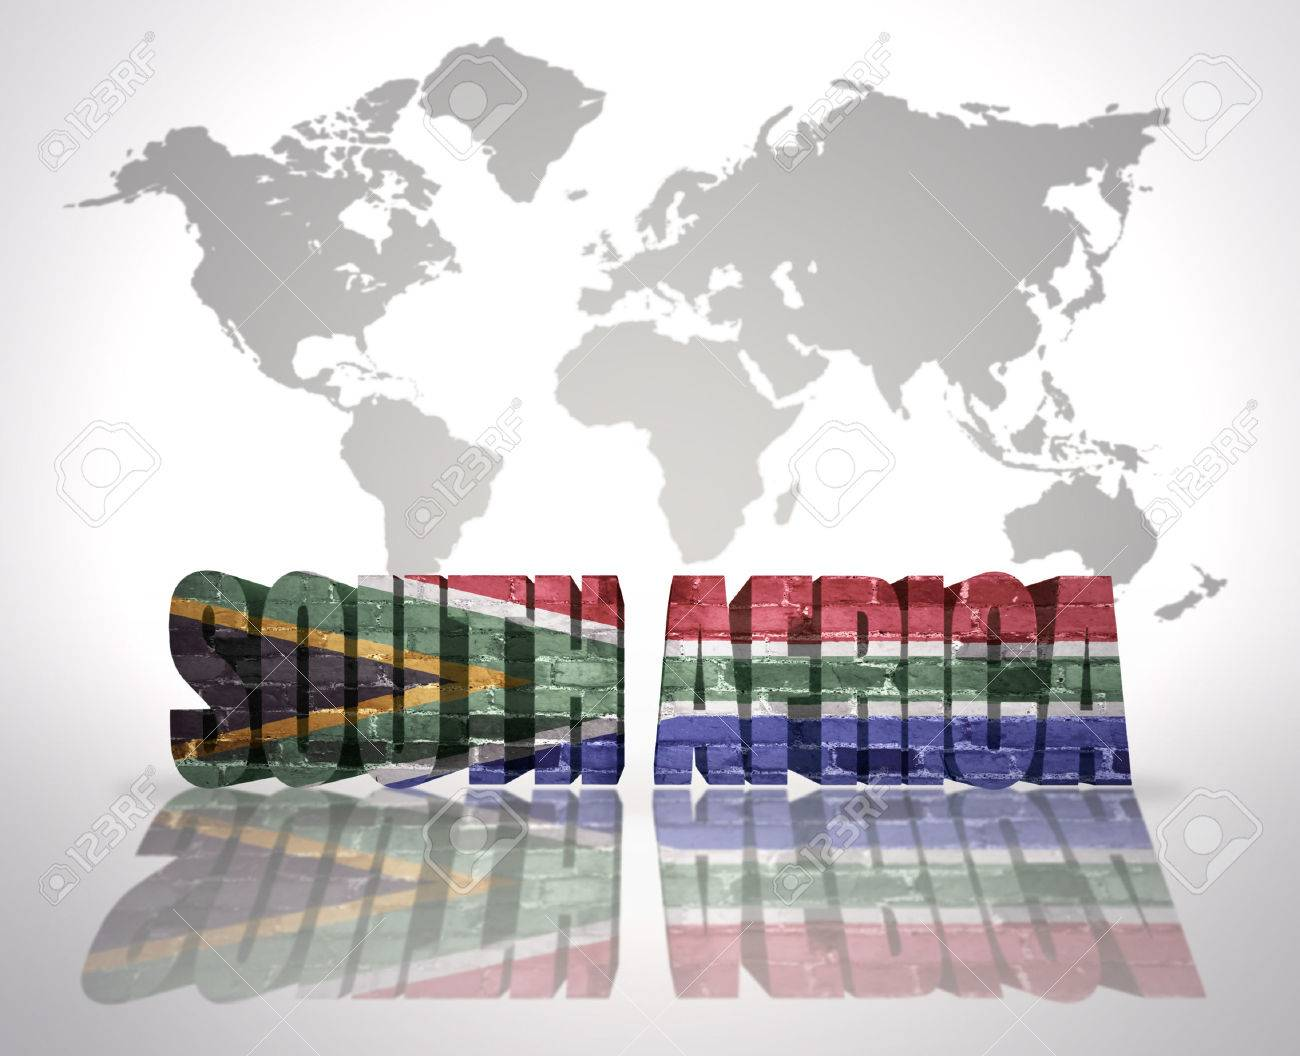 Word south africa with south africa flag on a world map background stock photo word south africa with south africa flag on a world map background gumiabroncs Choice Image